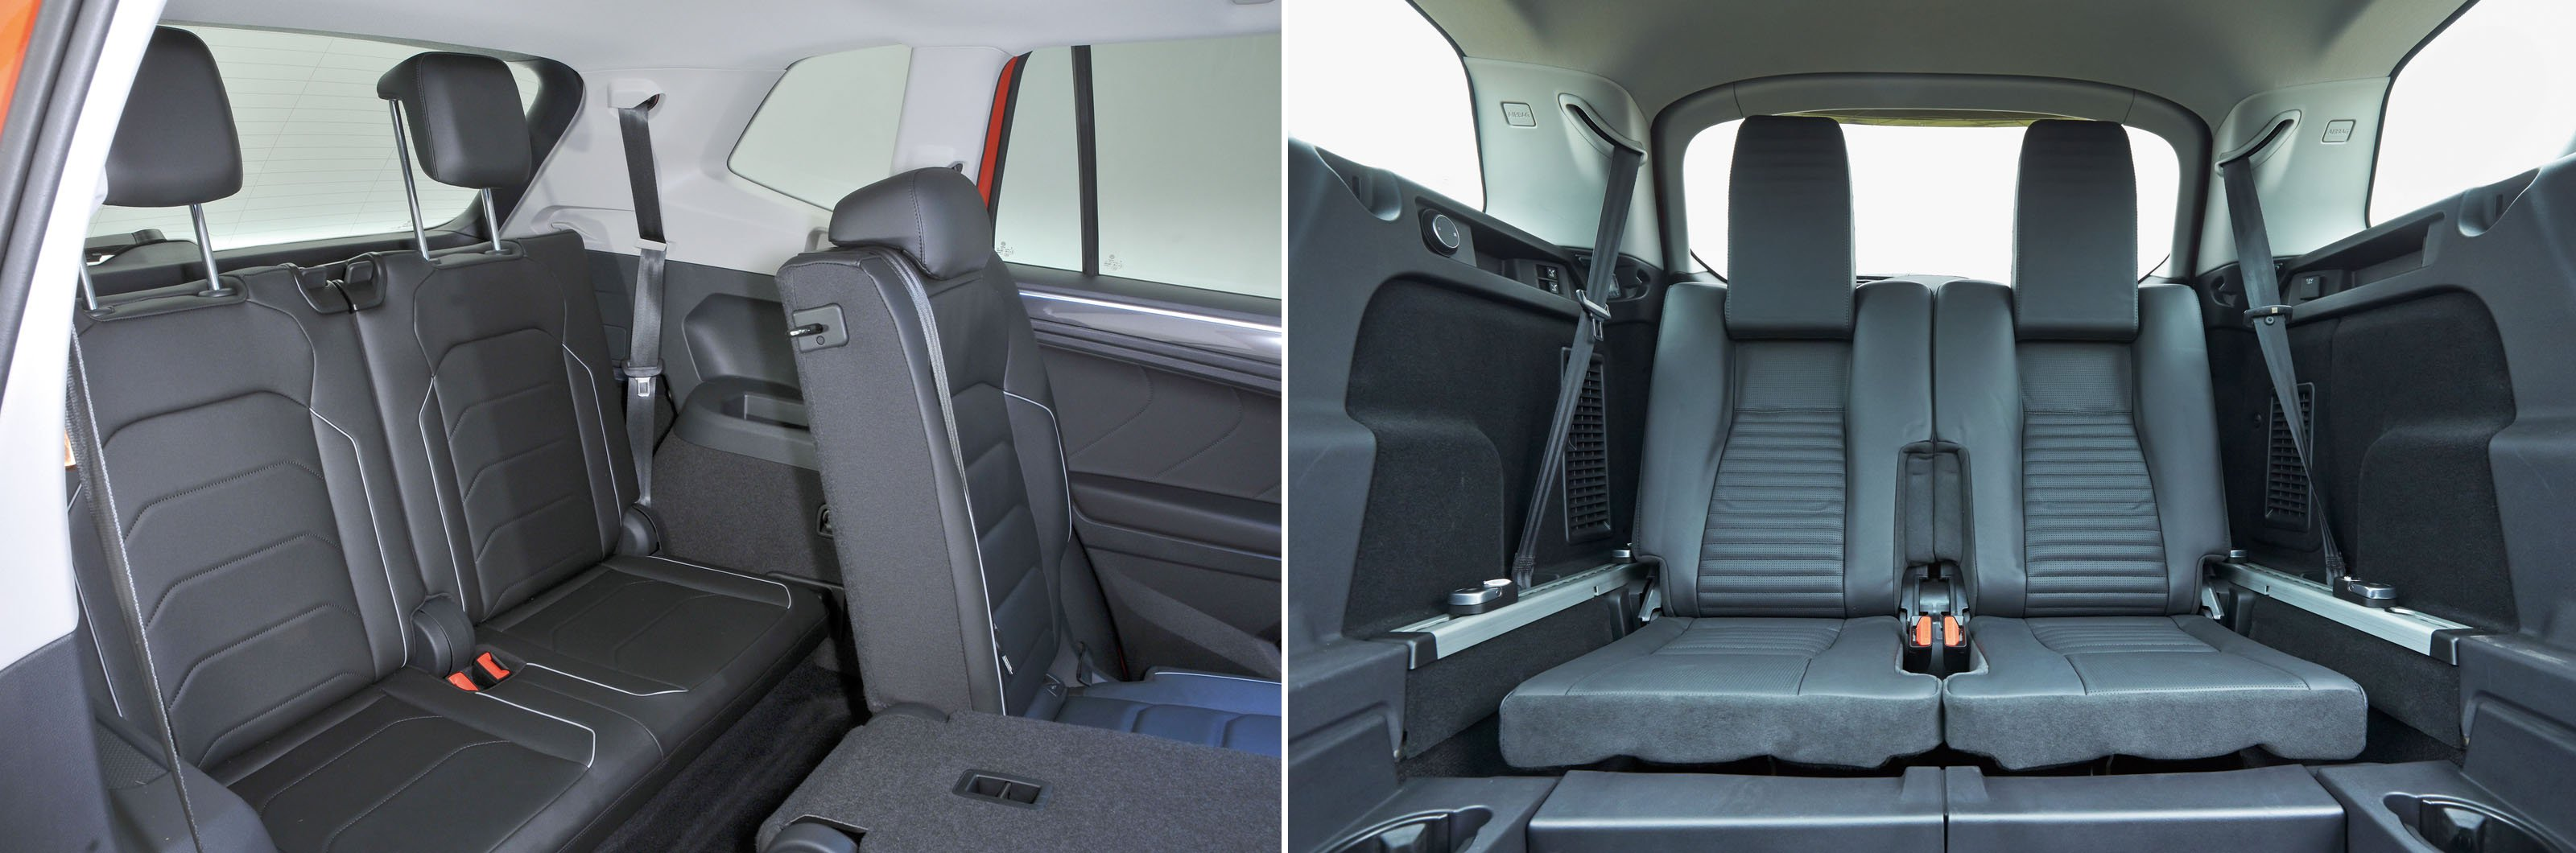 VW Tiguan Allspace vs Land Rover Discovery Sport rear seats